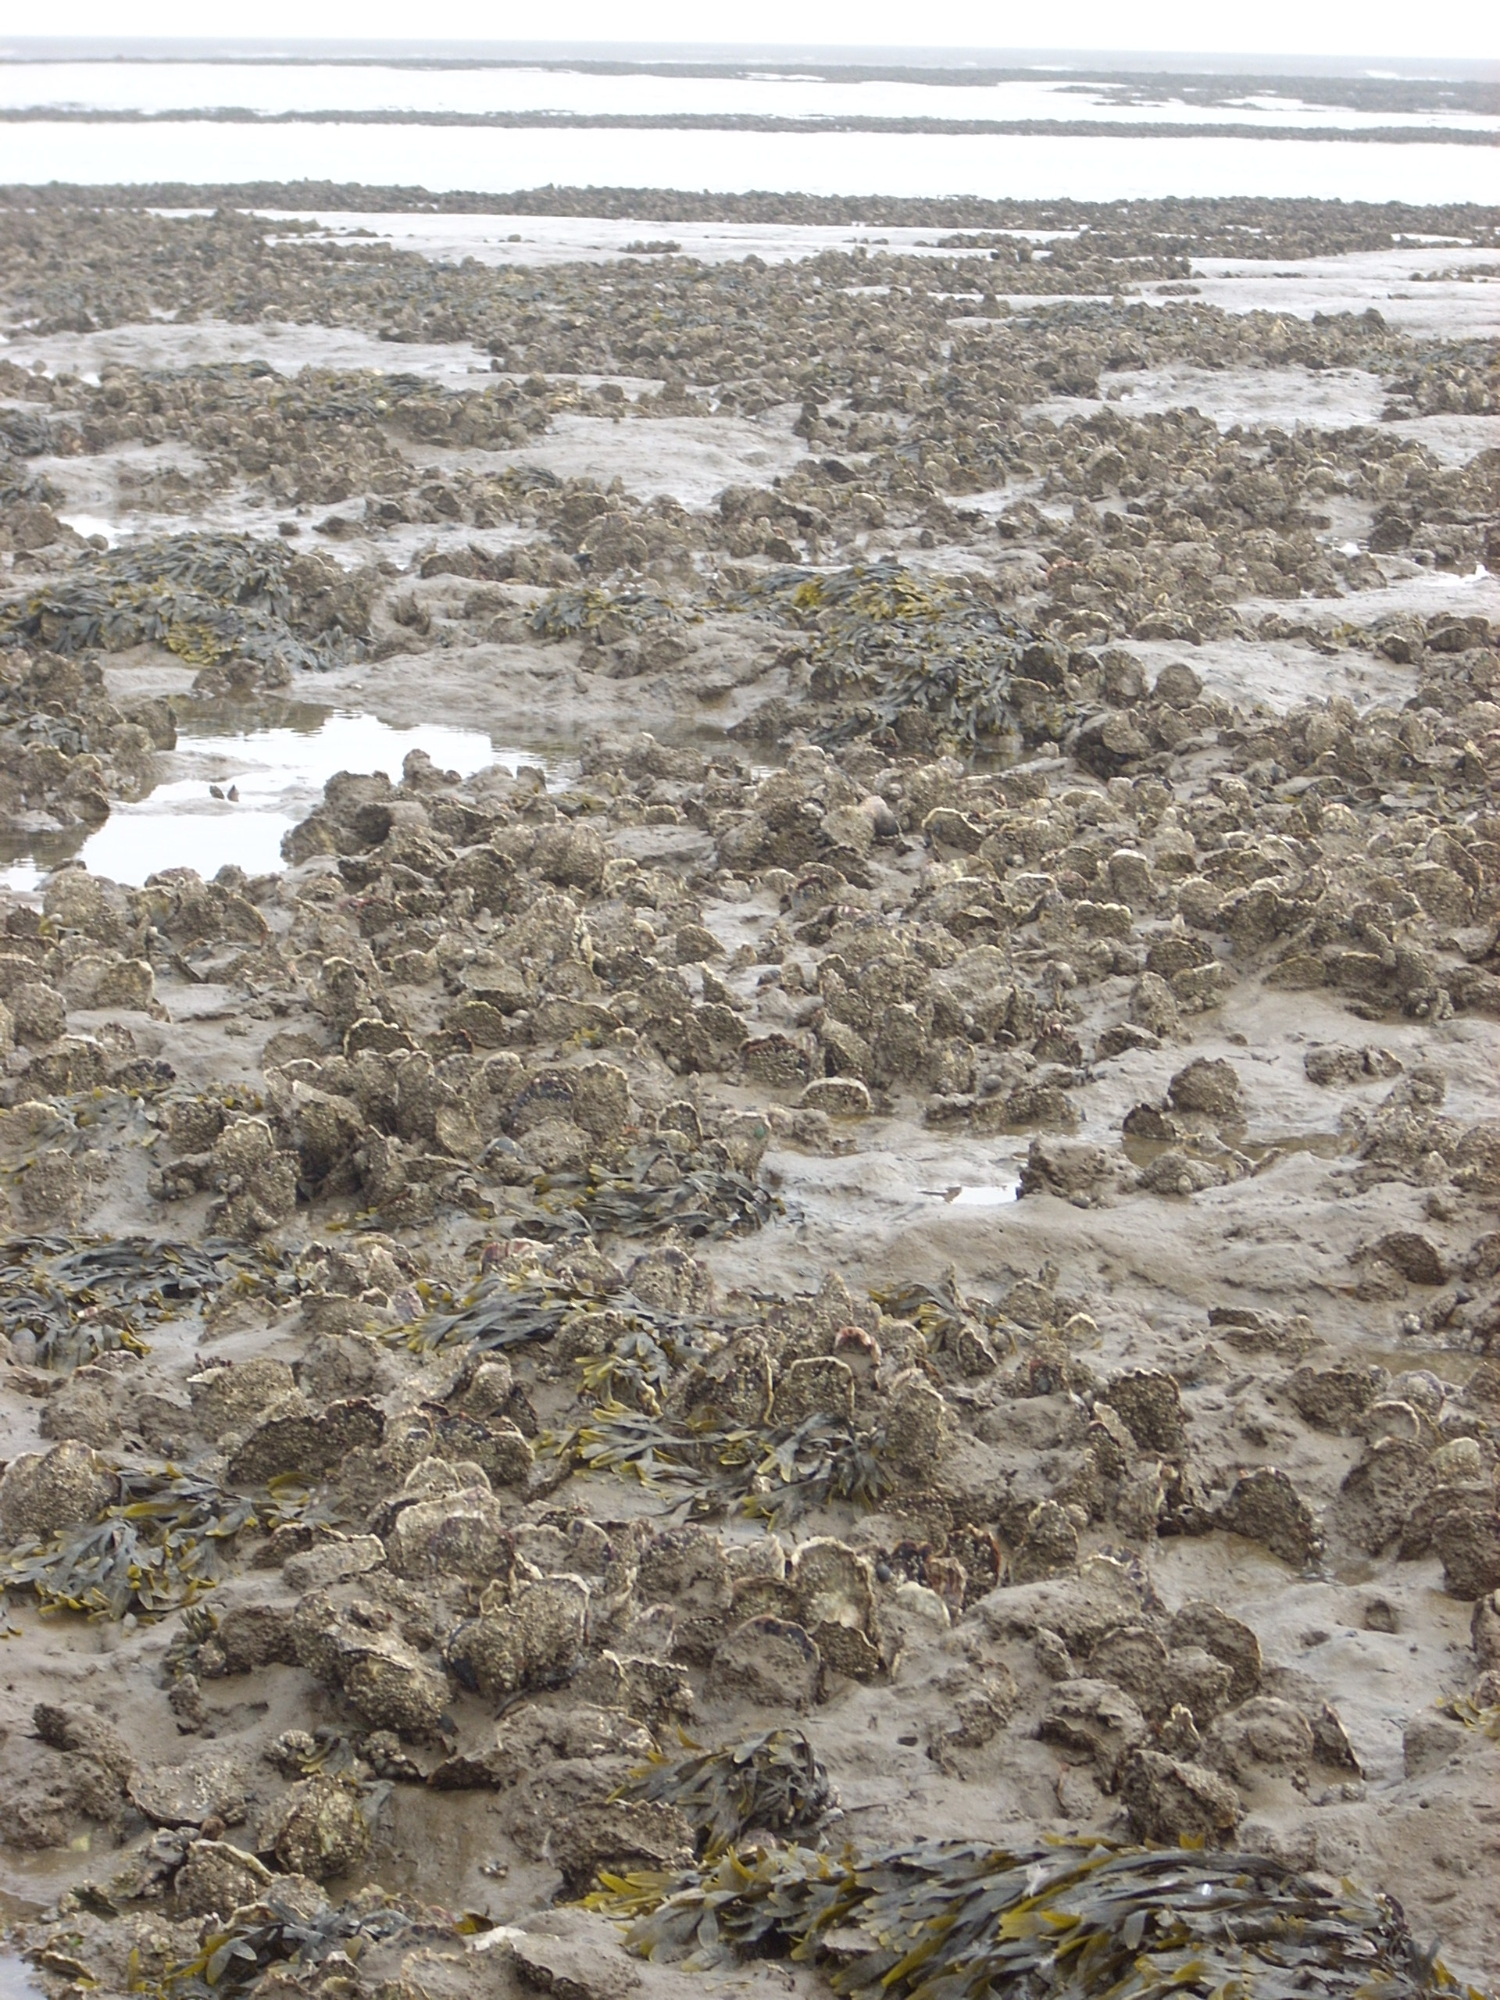 Section of a large oyster bed in the Wadden Sea